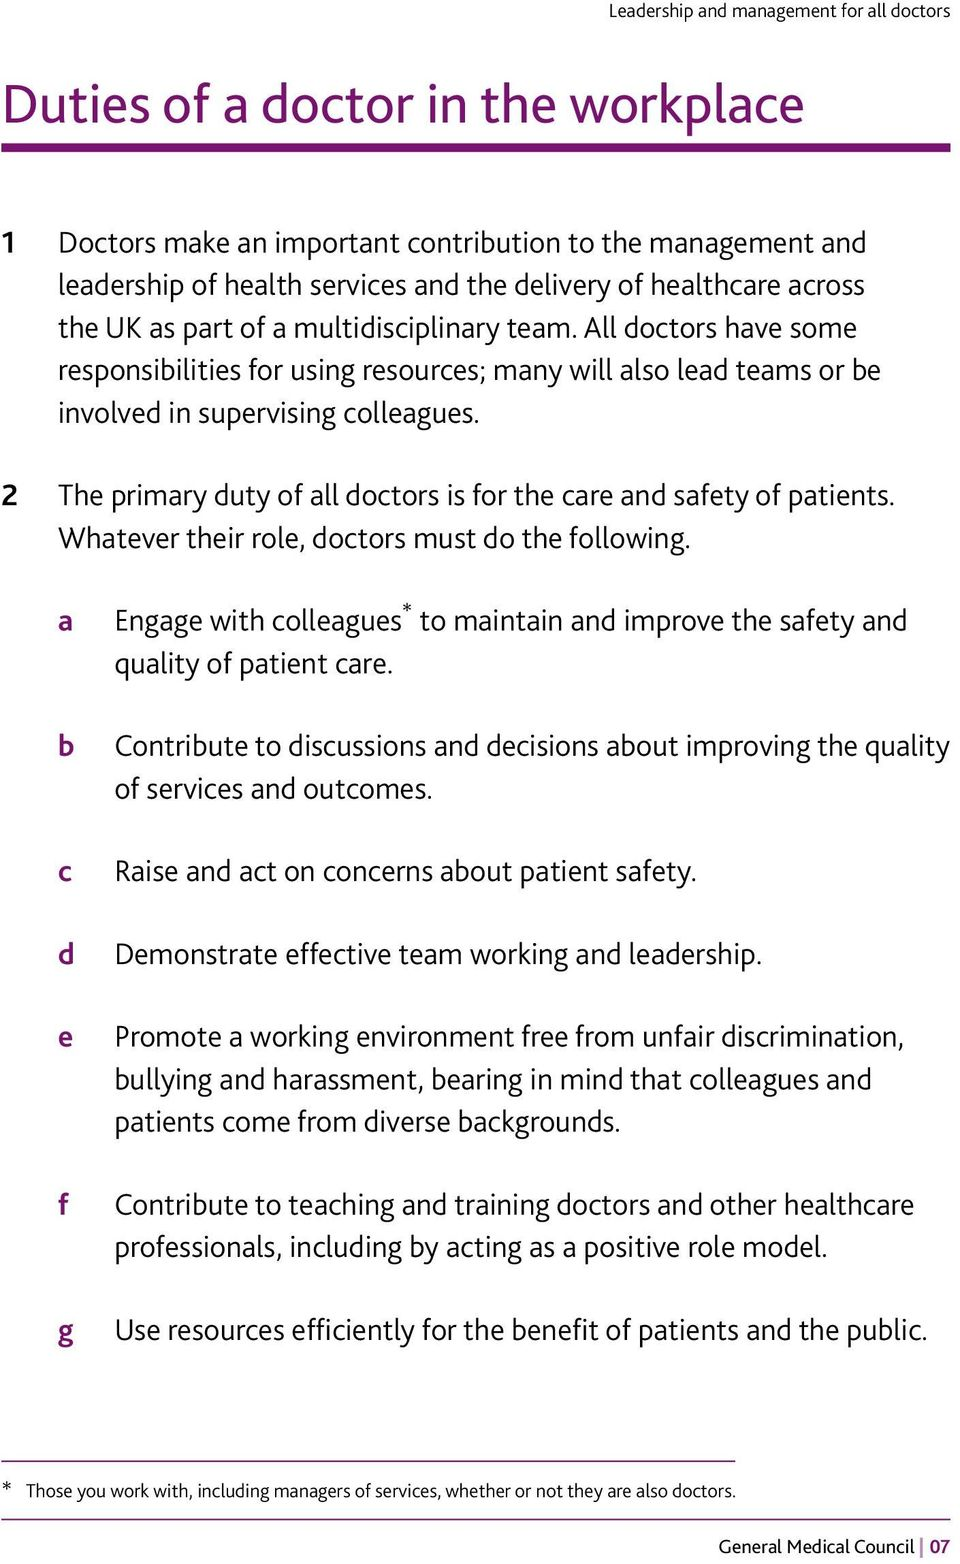 2 The primary duty of all doctors is for the care and safety of patients. Whatever their role, doctors must do the following.